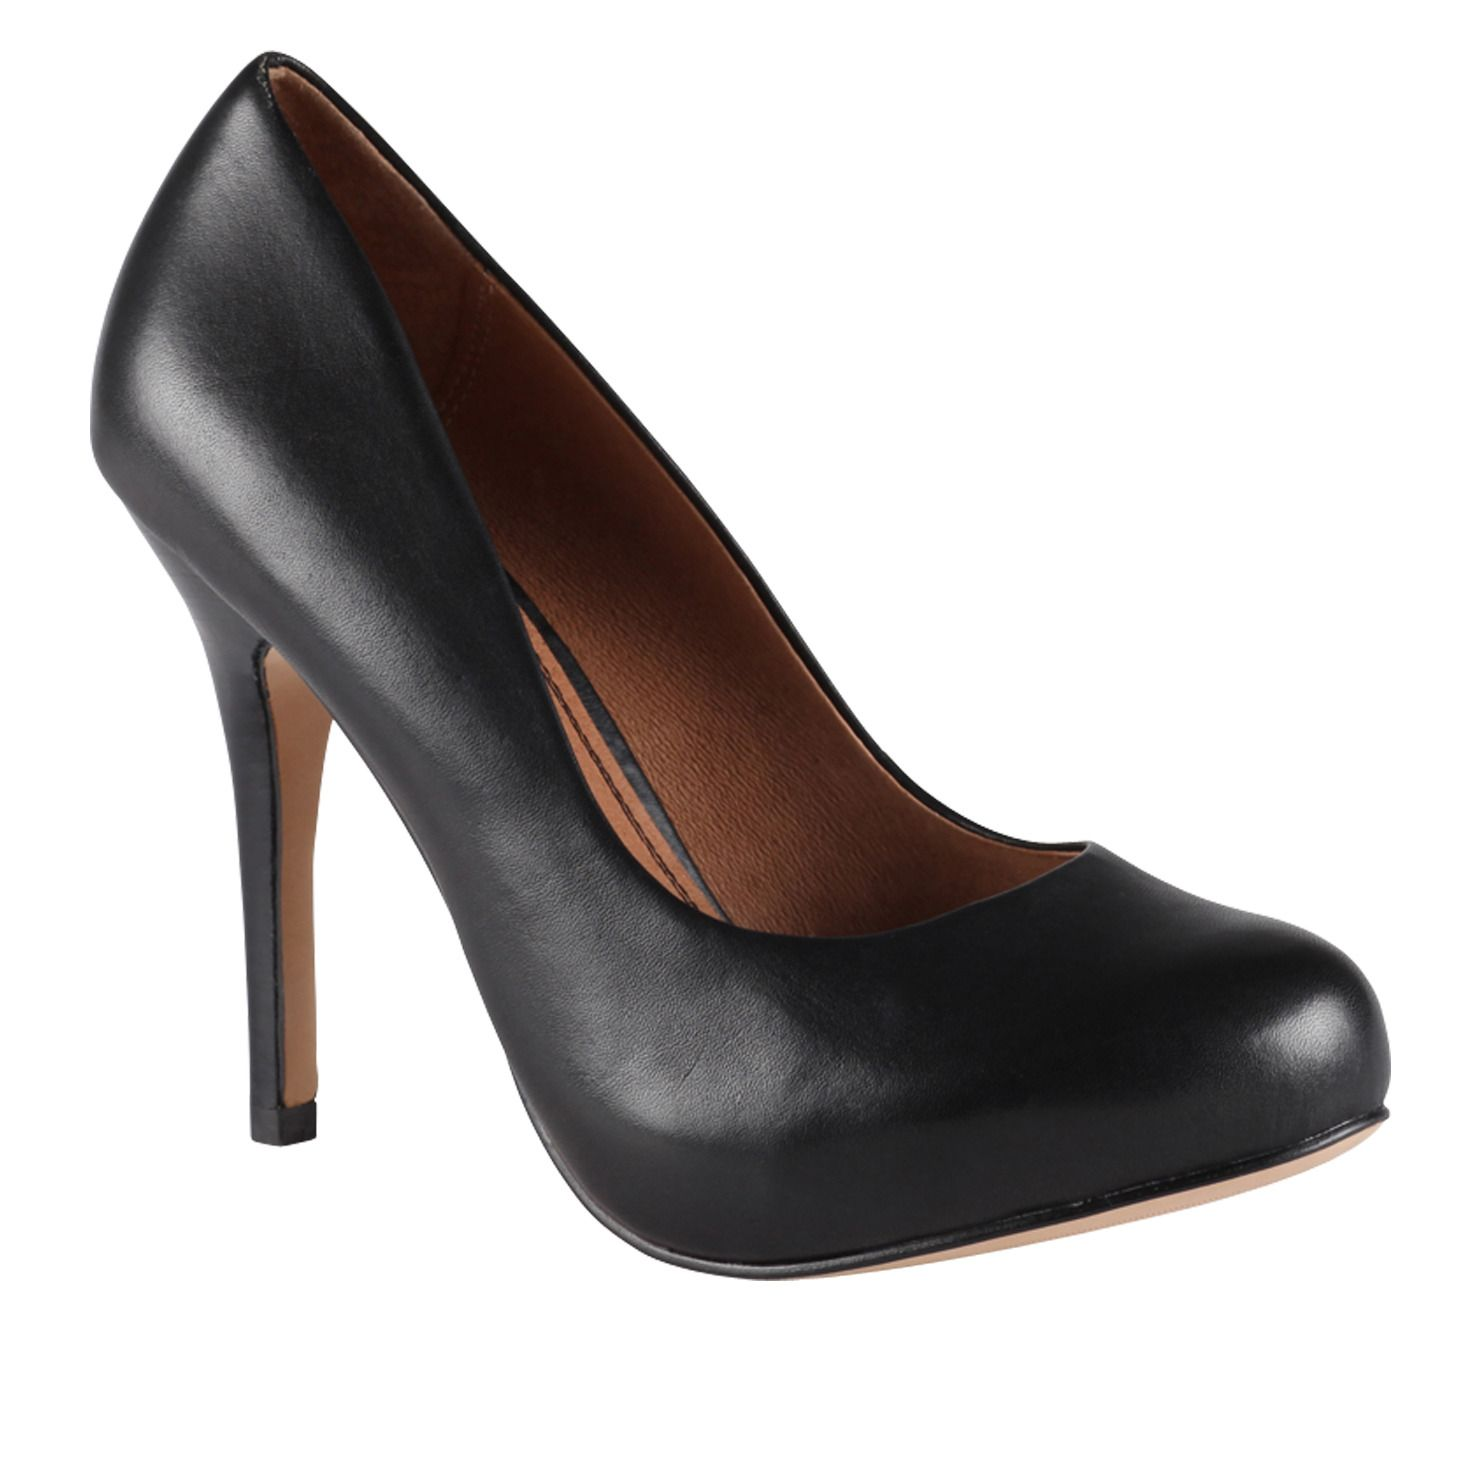 BESSODIA - women's high heels shoes for sale at ALDO Shoes.